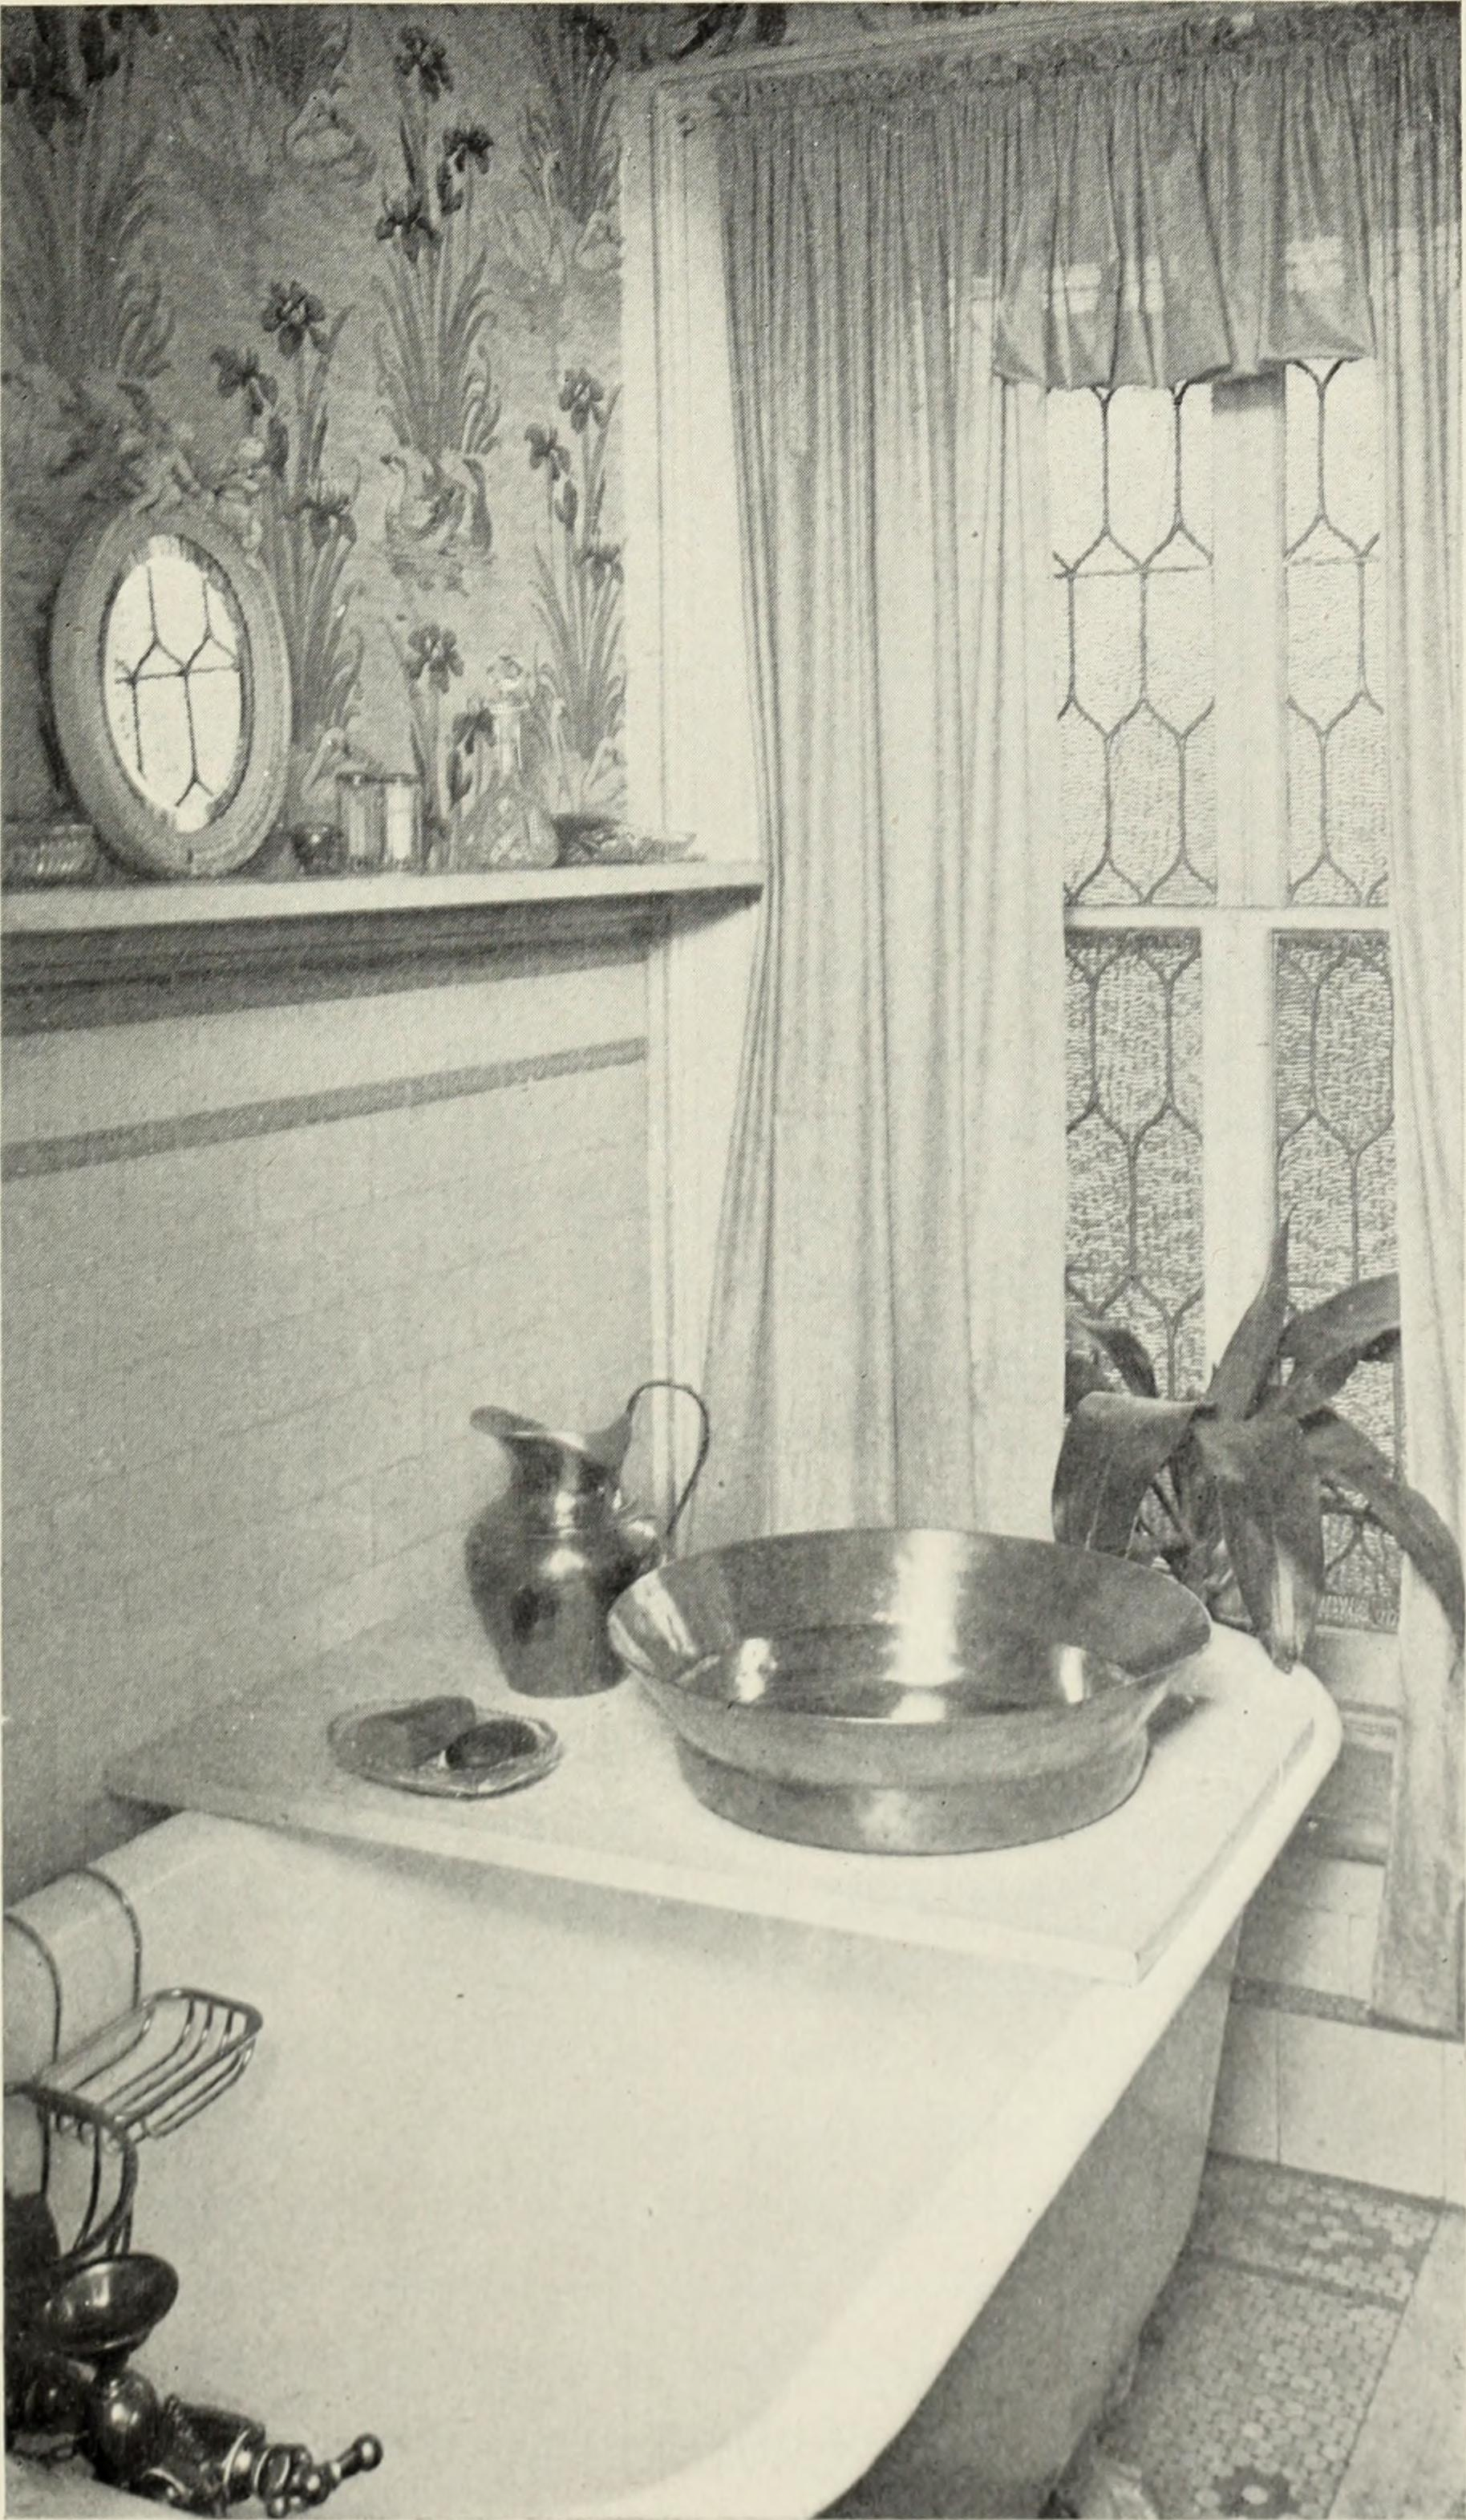 Bathroom featured in Lillie Hamilton French's  Homes and Their Decoration , Dodd, Mead and Company, New York, 1903 via  Flickr . We can't tell you what the color palette was but we  can  tell you these people weren't afraid to really go for it when it came to pattern and details.